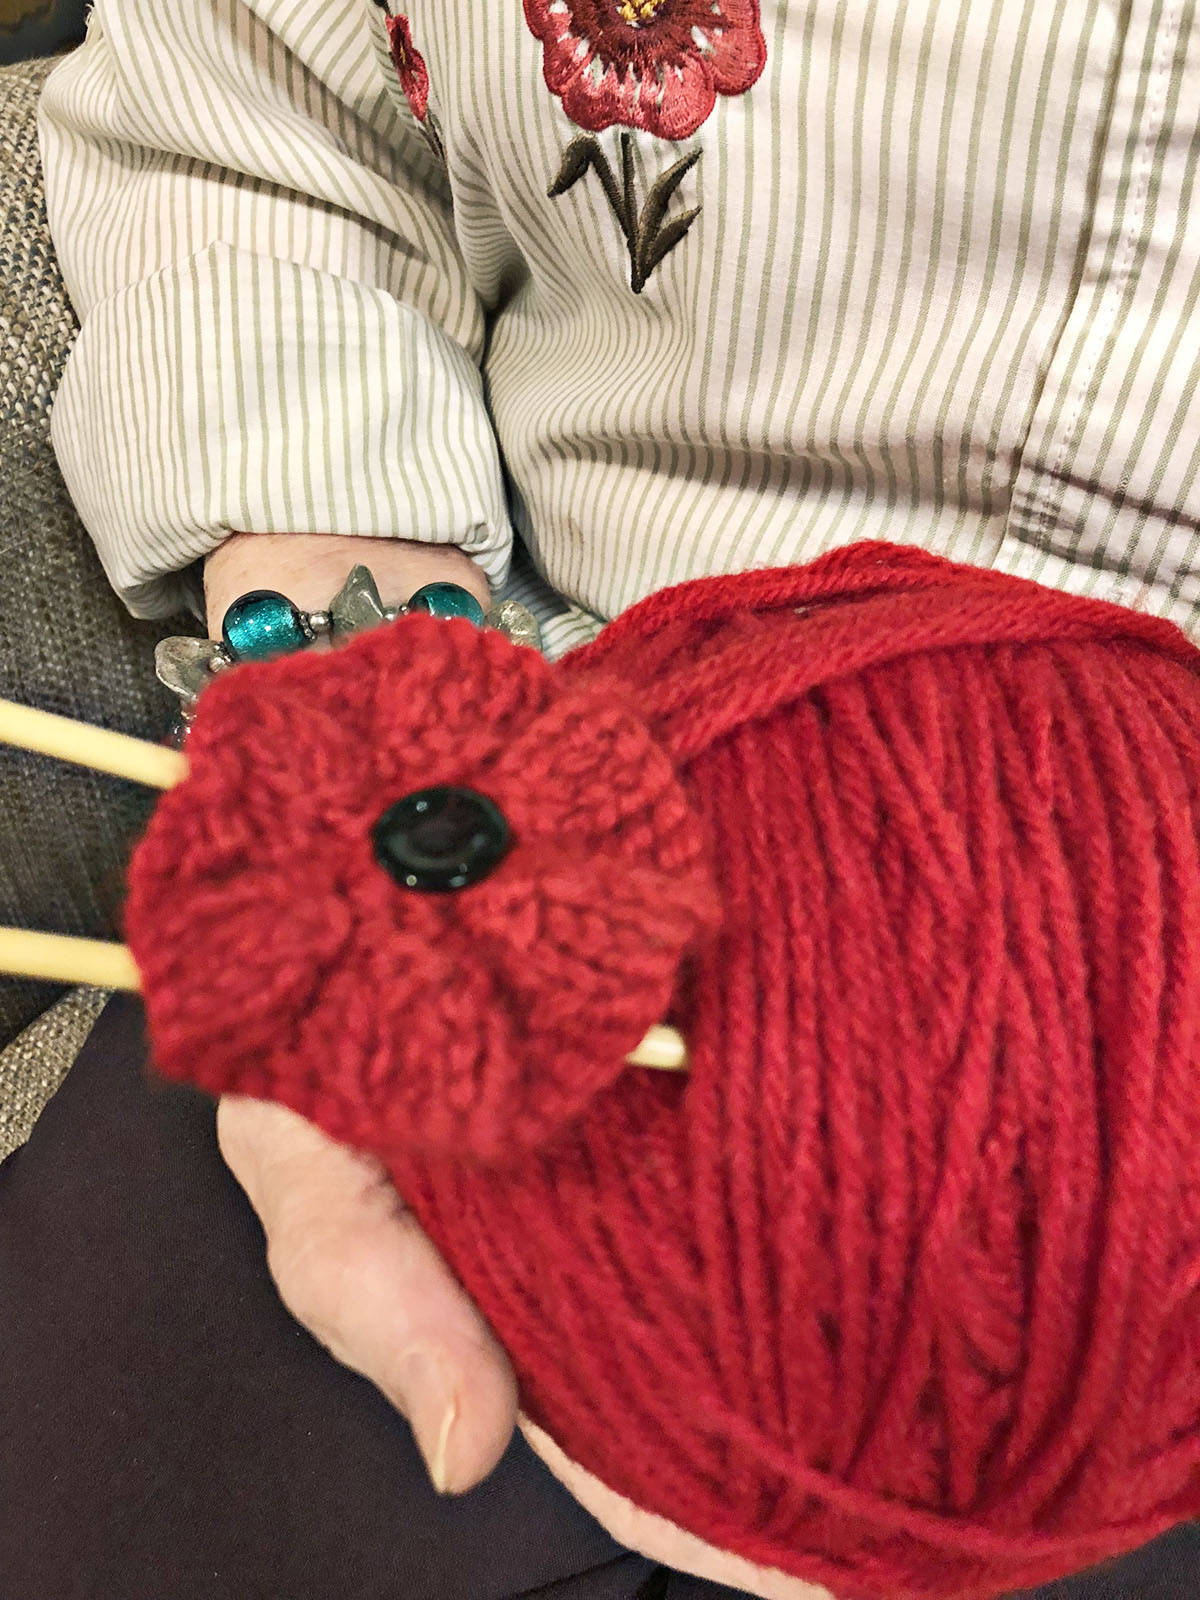 Irene Brummitt and some friends at Avalon Gardens knitted and sold poppies, donating the money to the Legion Poppy Fund. (Photo provided)